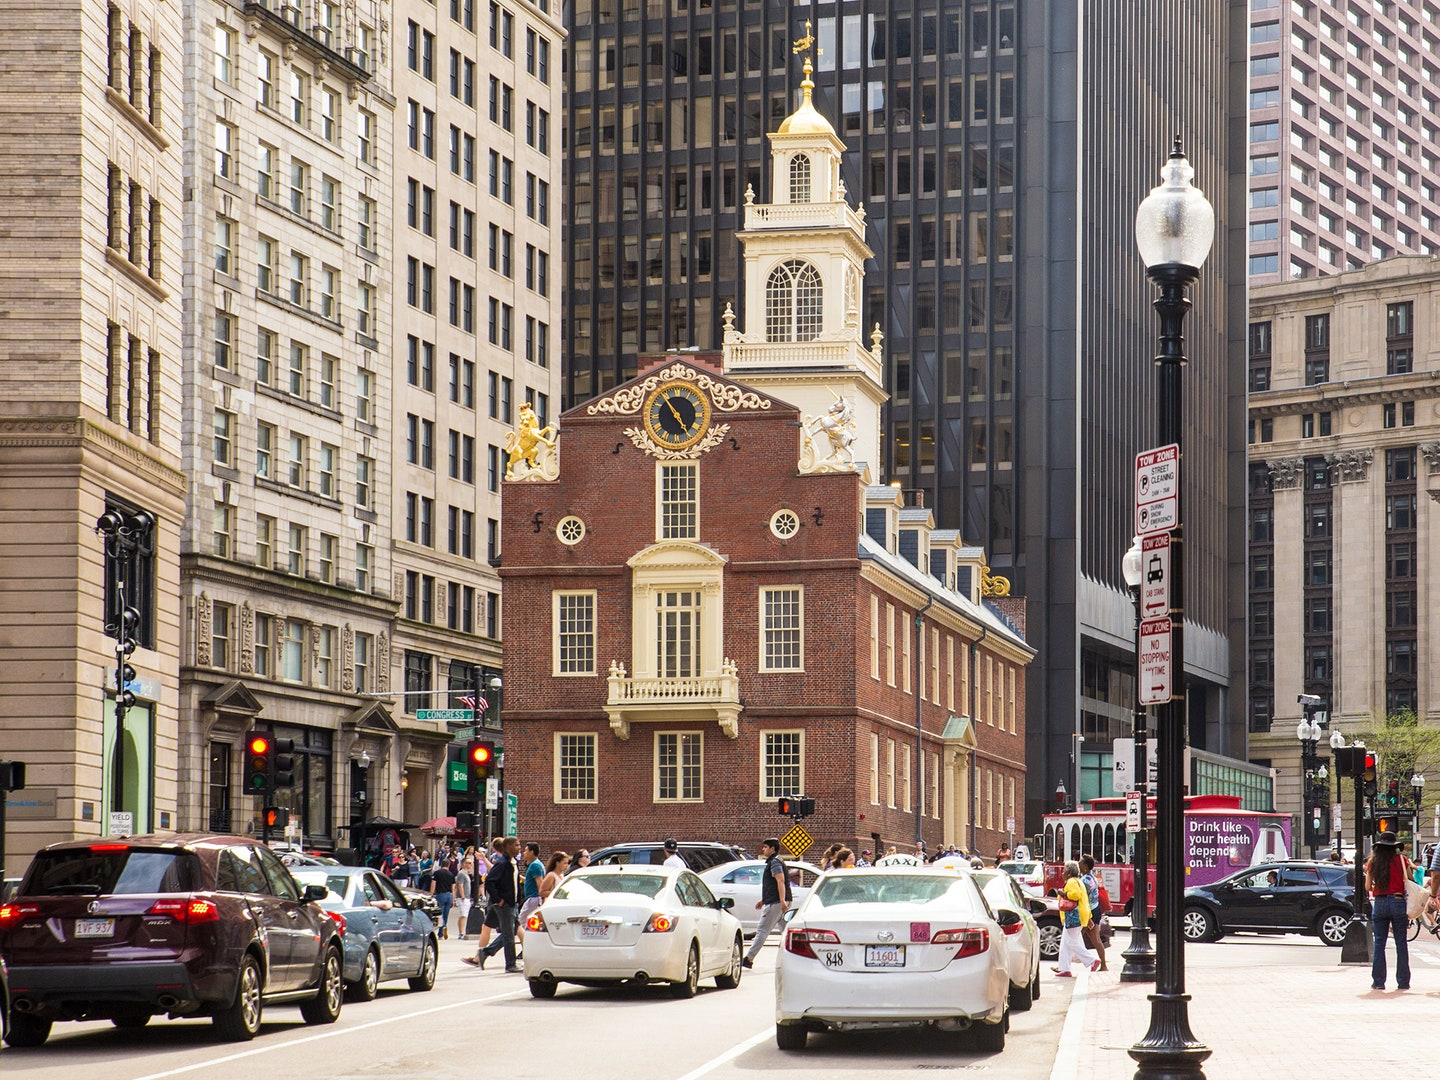 https://media.cntraveler.com/photos/59b02672d3d5dd0e18d77b9a/master/w_1440,c_limit/boston-traffic-GettyImages-538885784.jpg